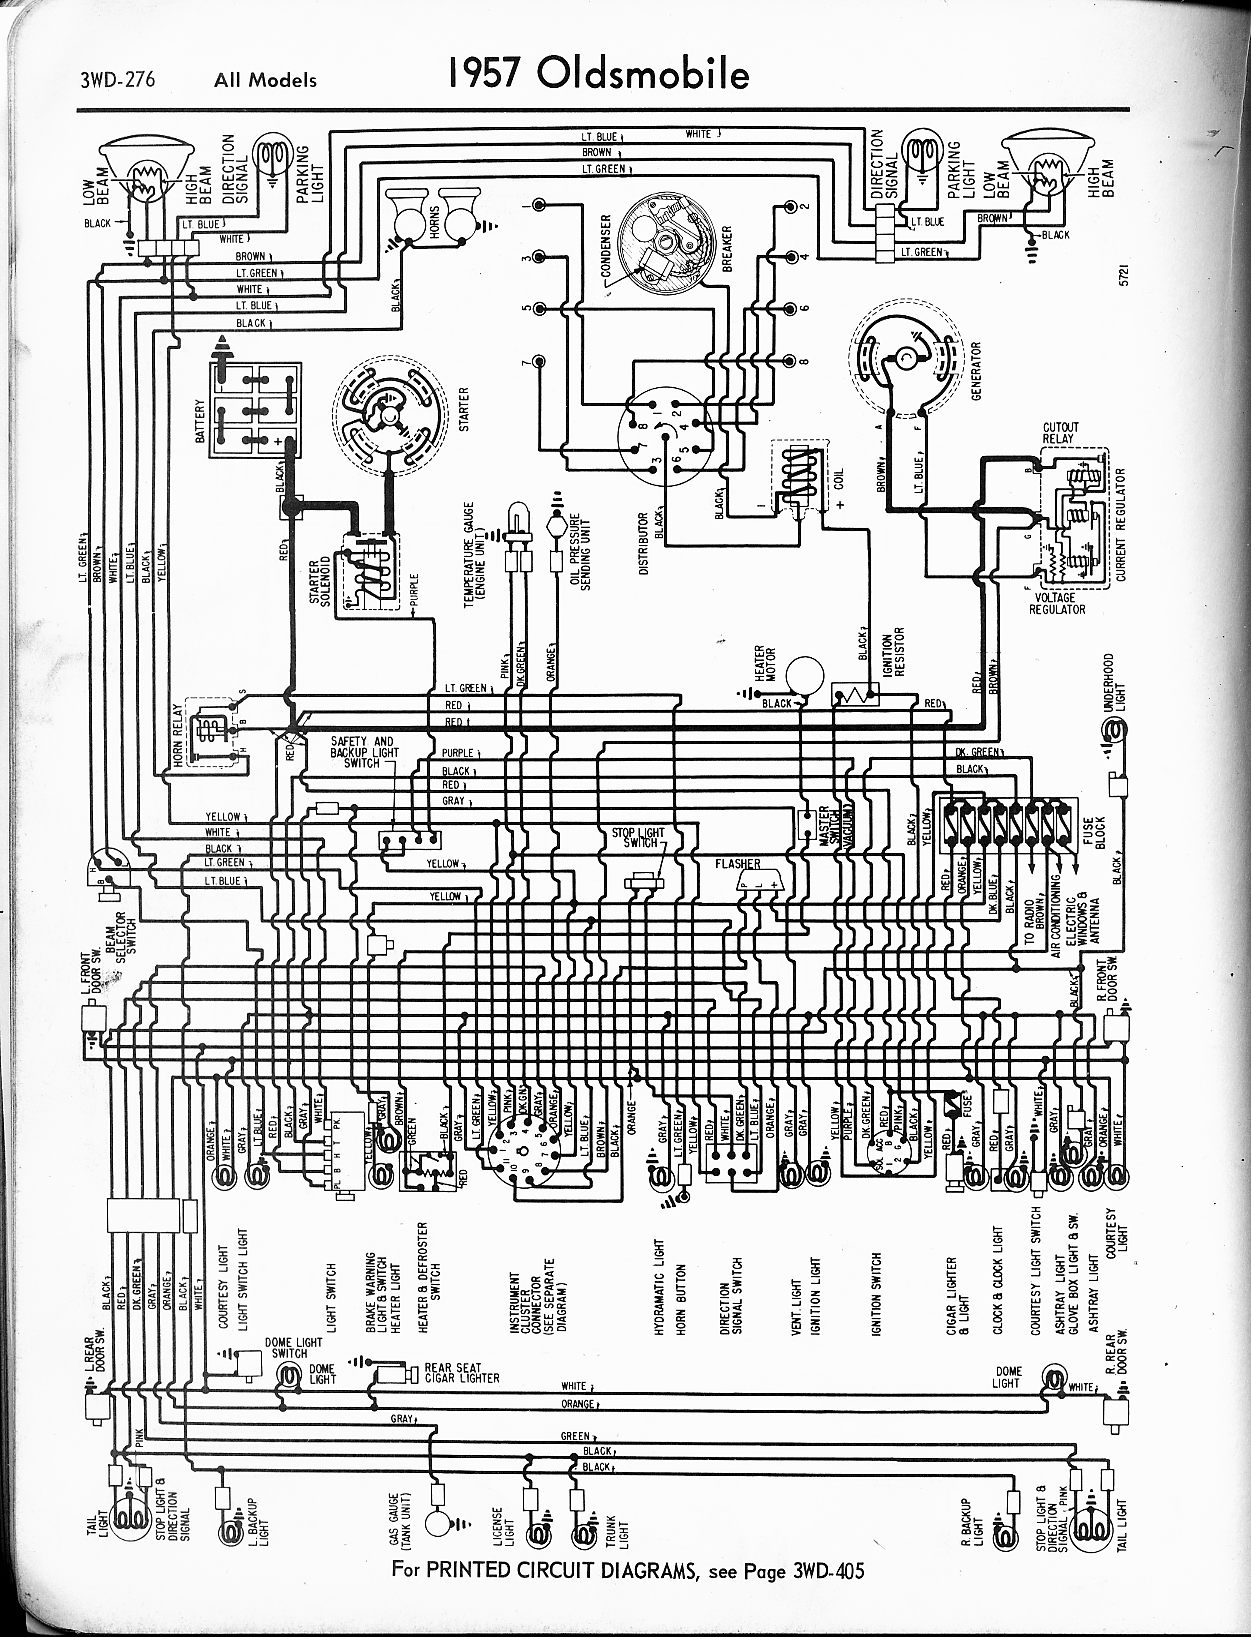 oldsmobile wiring diagrams - the old car manual project 1994 oldsmobile 98 wiring diagram